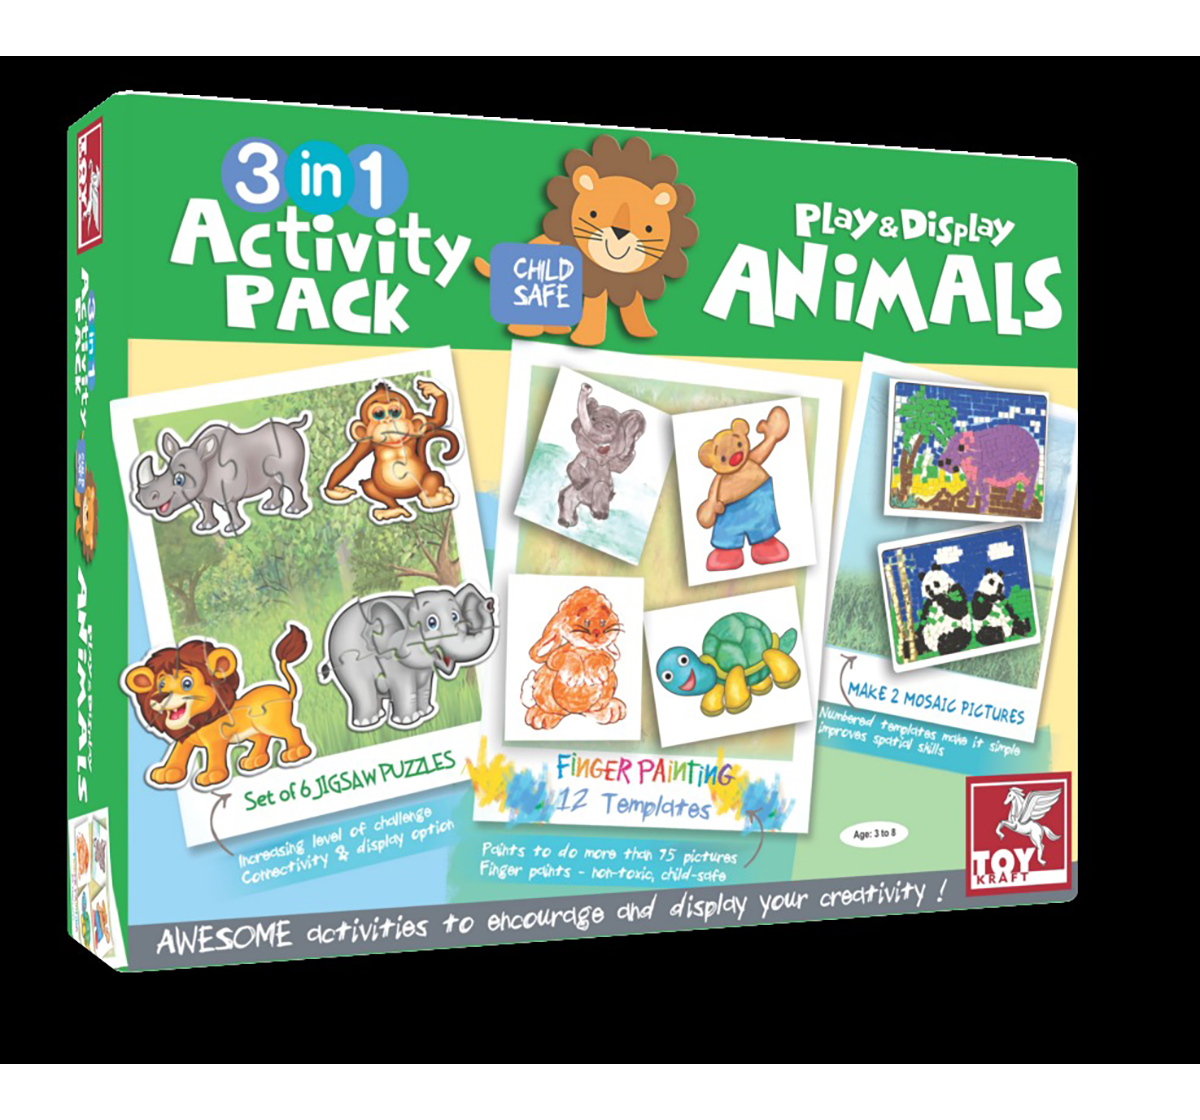 Toy Kraft | Toy Kraft 3 In 1 Activity – In Jungle DIY Art & Craft Kits for Kids age 3Y+